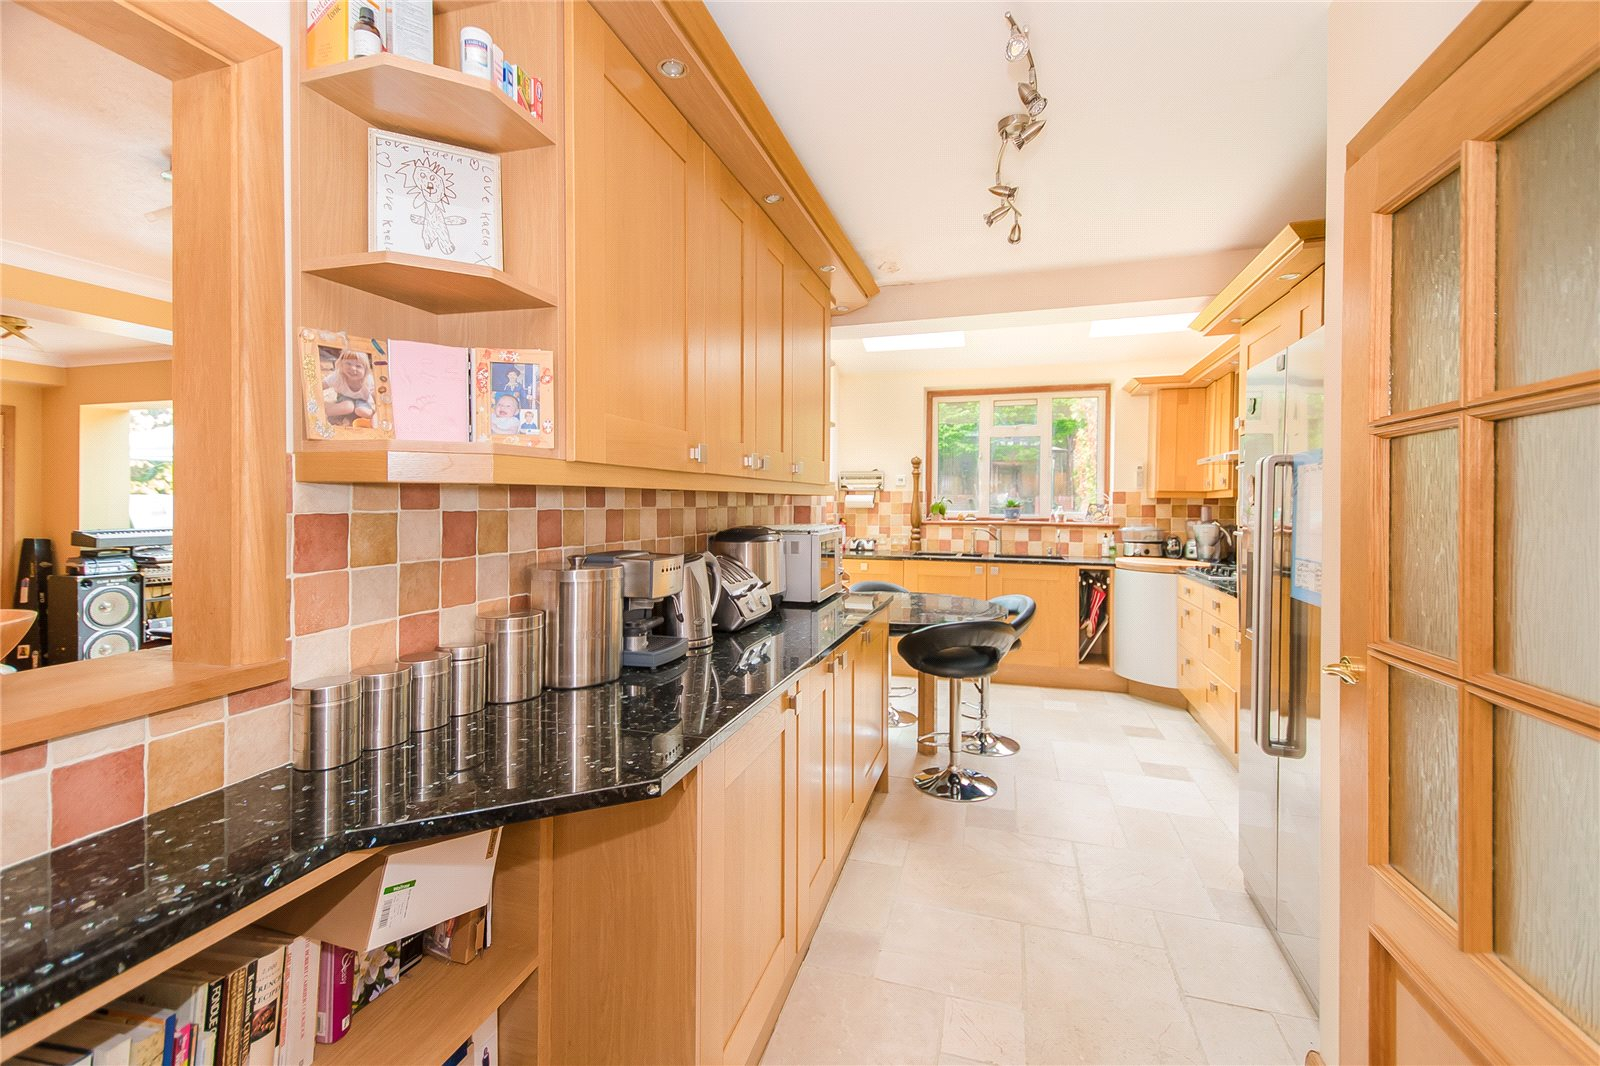 Additional photo for property listing at Lower Road, Denham, Uxbridge, Middlesex, UB9 Middlesex, Inglaterra